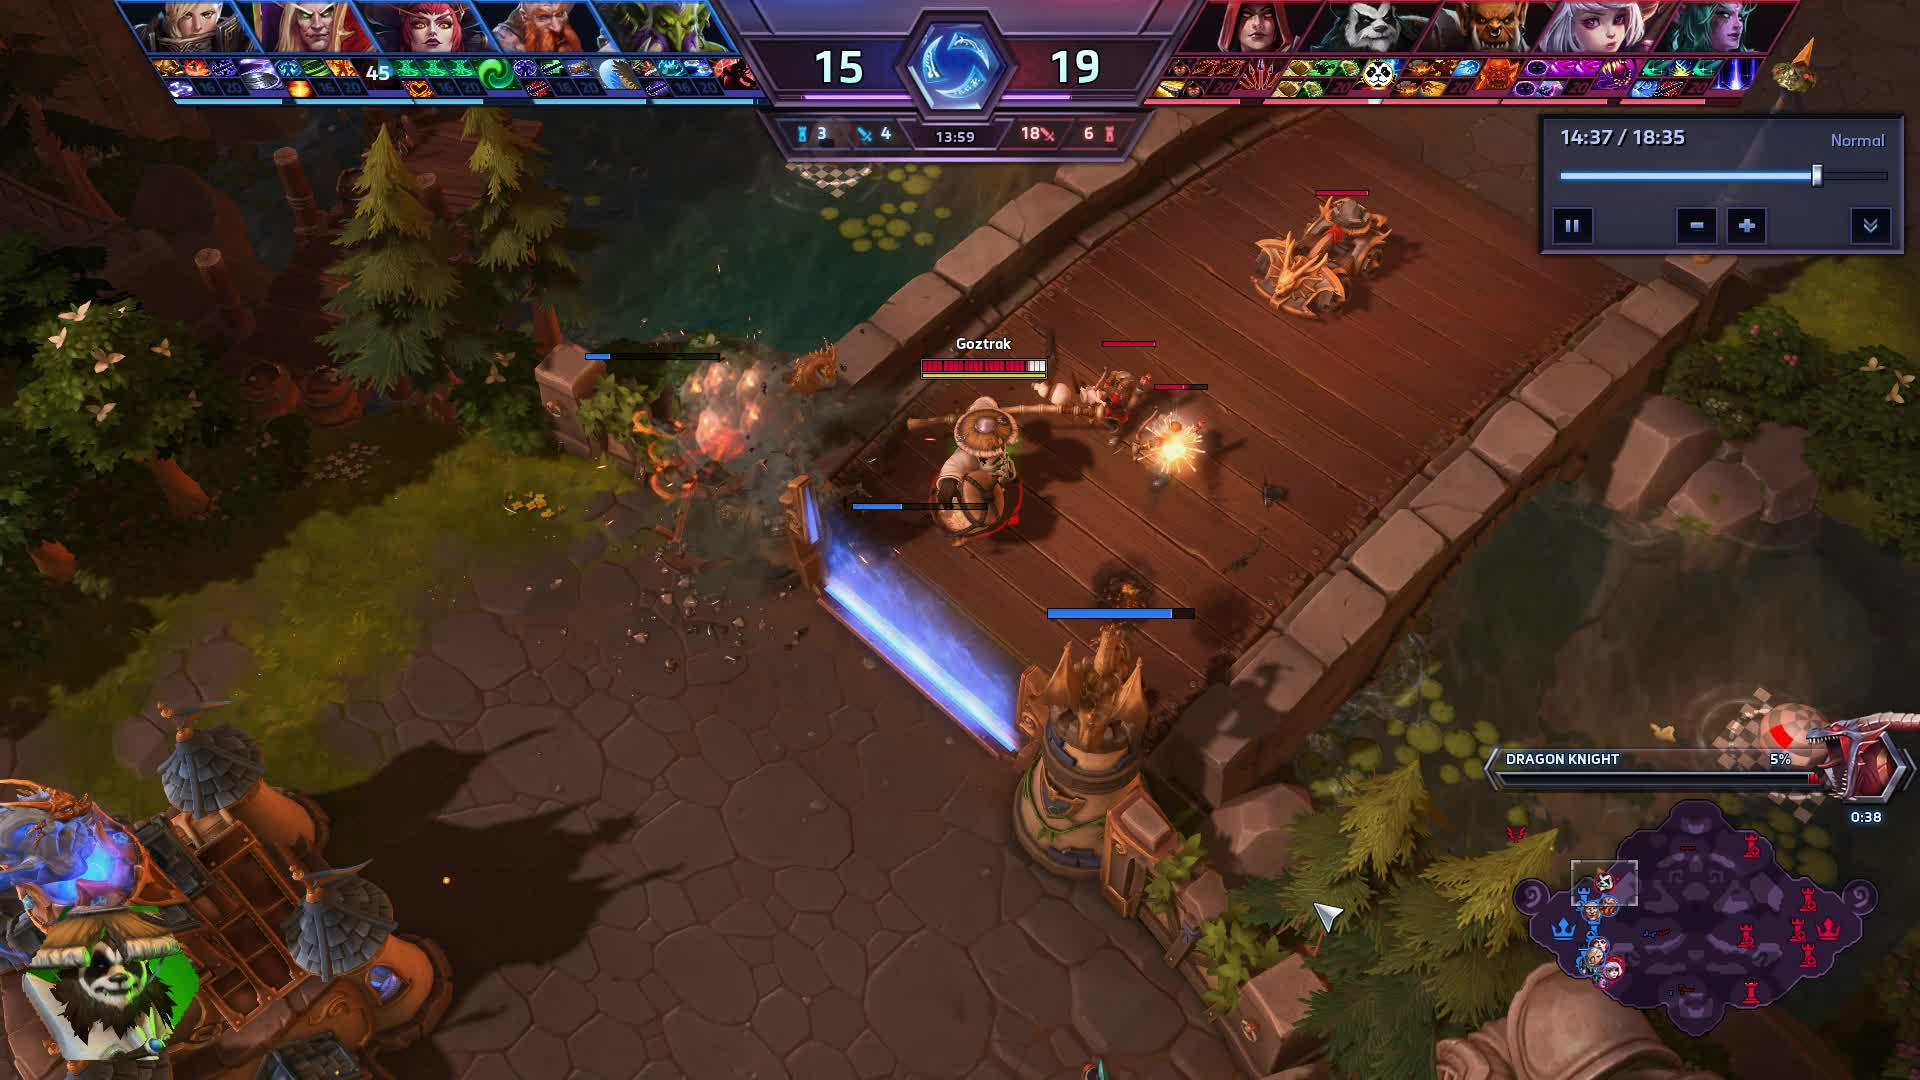 heroesofthestorm, Heroes of the Storm 2019.07.21 - 20.43.10.02 GIFs